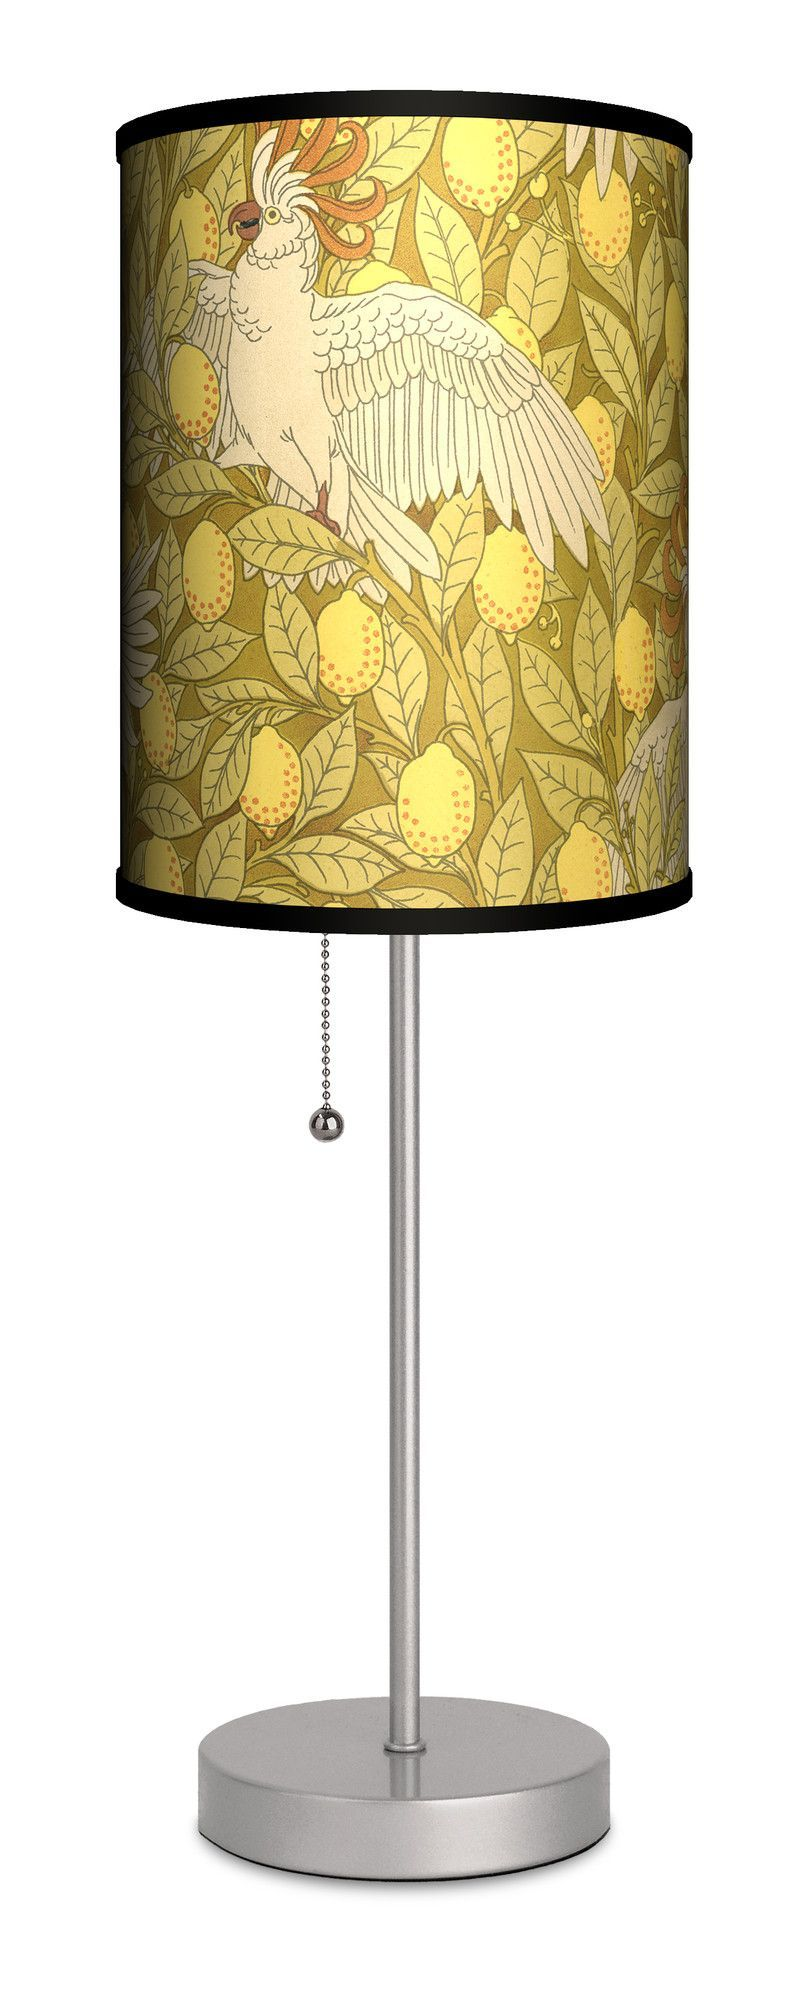 Mermaid accent lamp - On The Rocks Lounging Mermaid Crackled Glass Accent Lamp This Pretty Polished Crackled Glass Mermaid Lamp Is An Excellent Accent In Rooms With Bea